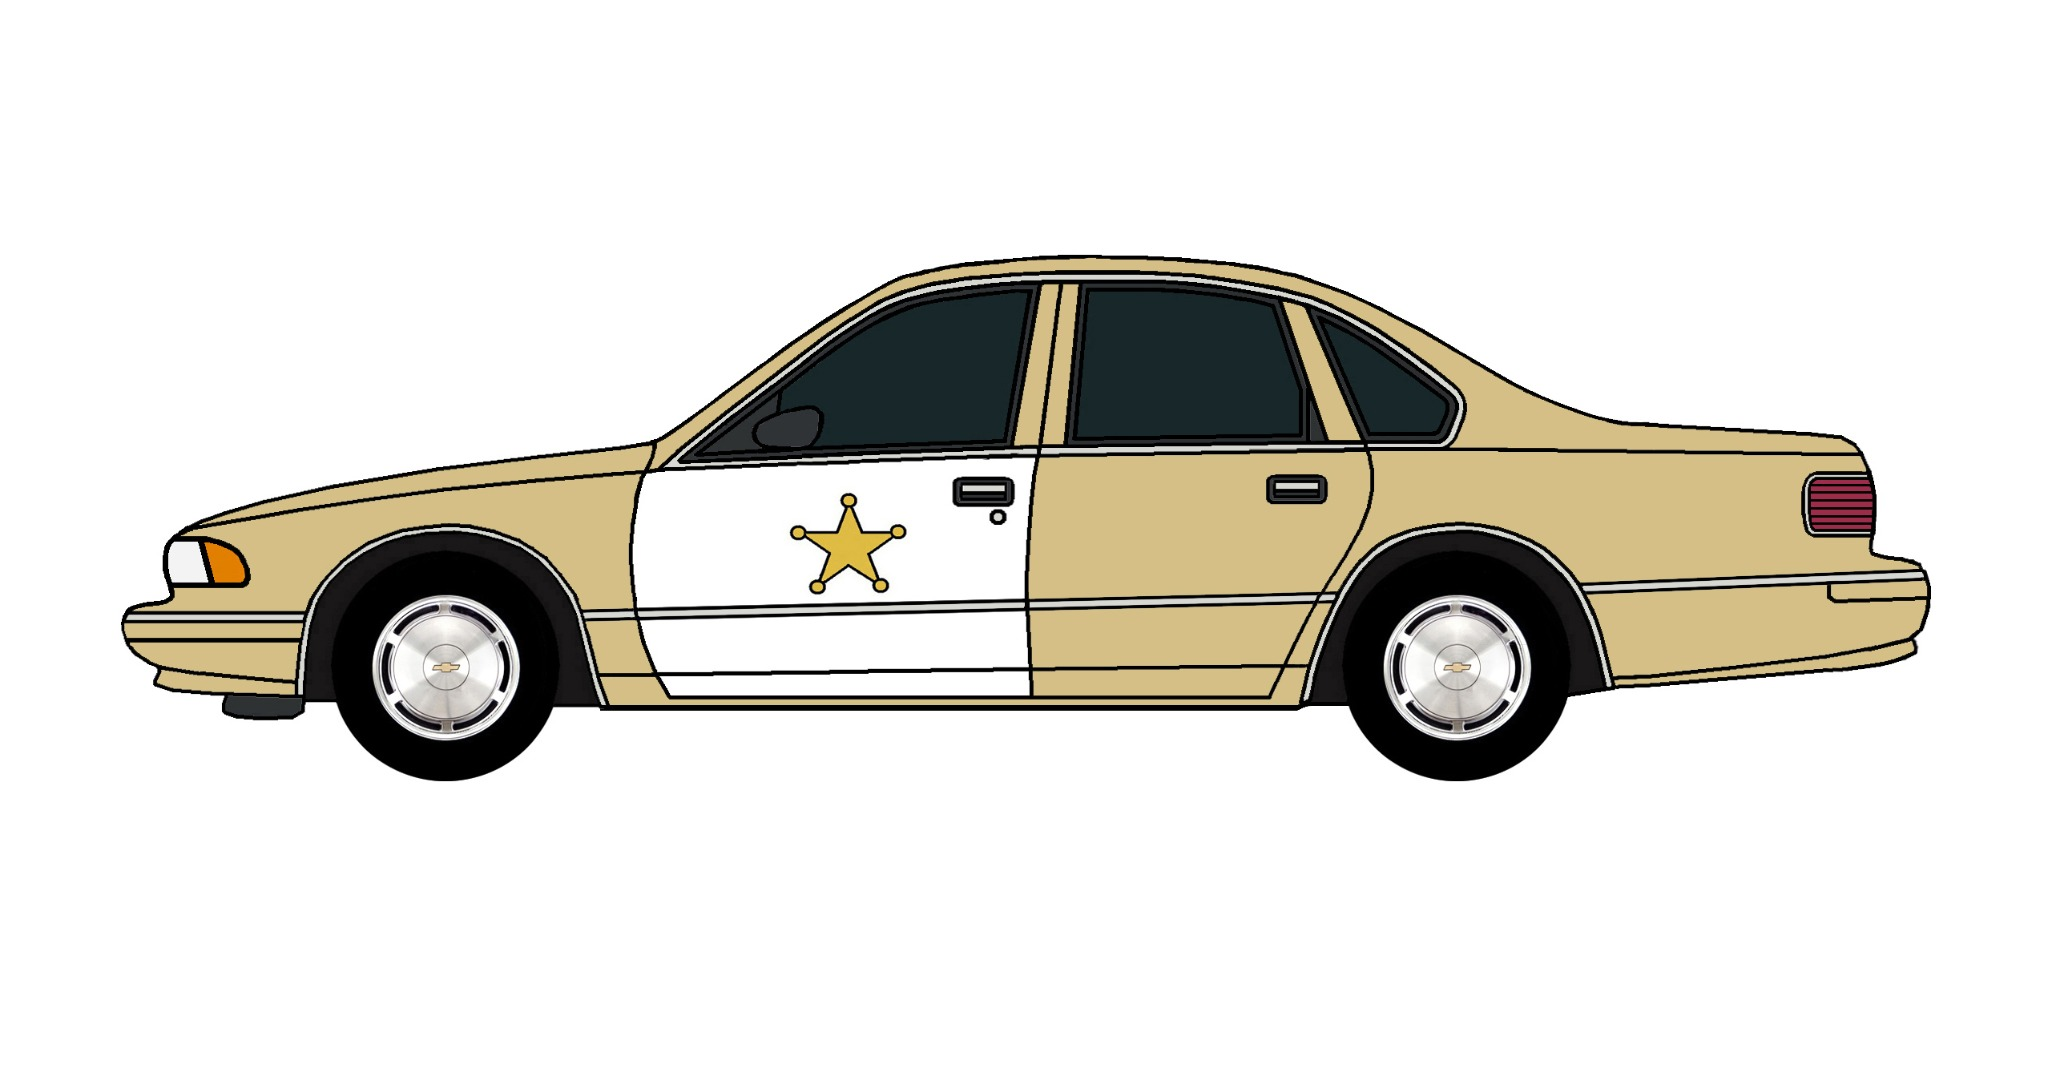 1995 Chevy Caprice Police Car TAN